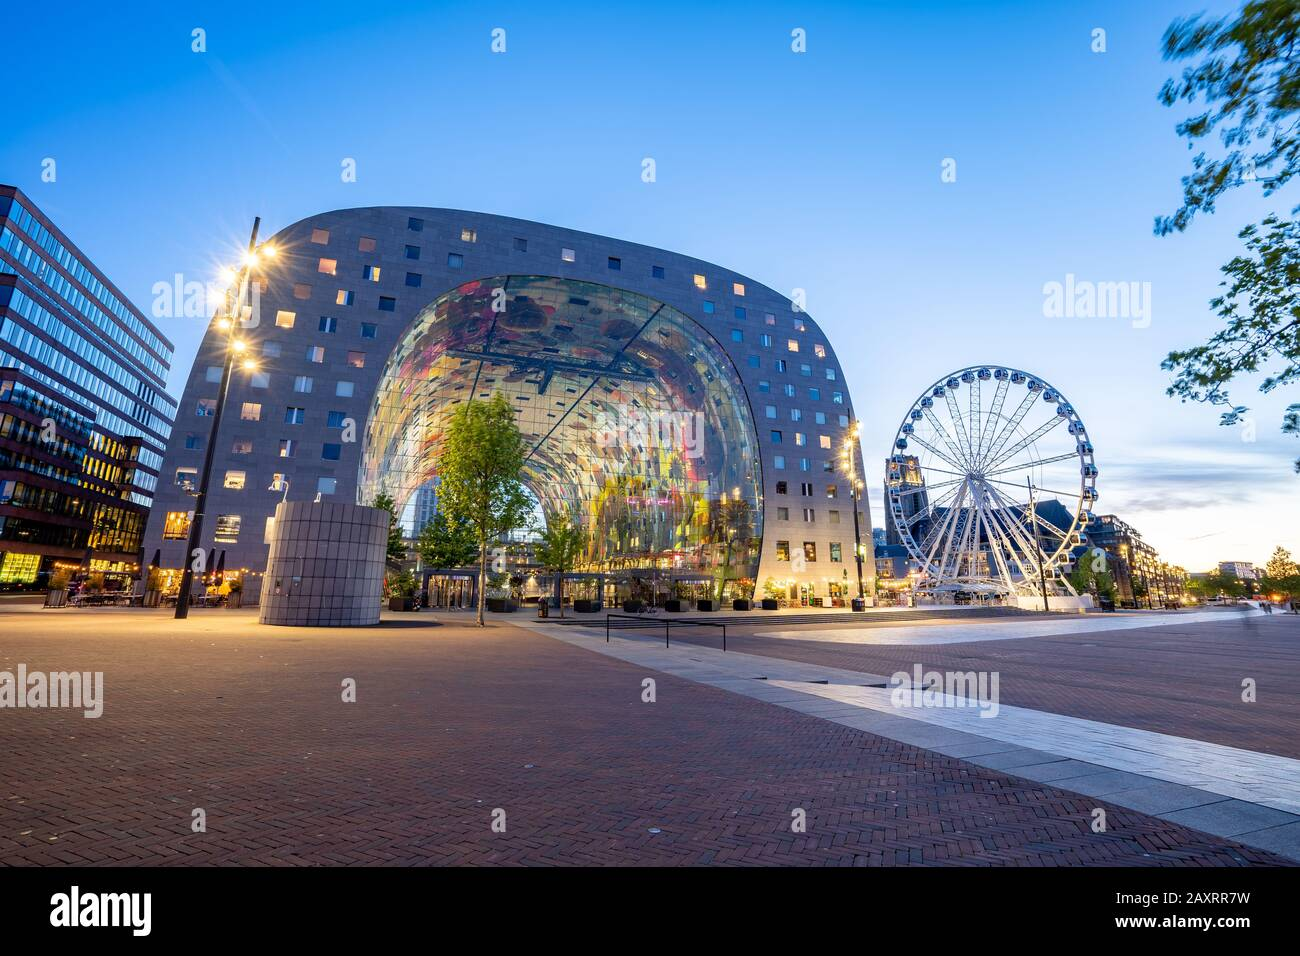 Rotterdam, Netherlands - May 13, 2019: View of Markthal at night in Rotterdam city, Netherlands. Stock Photo